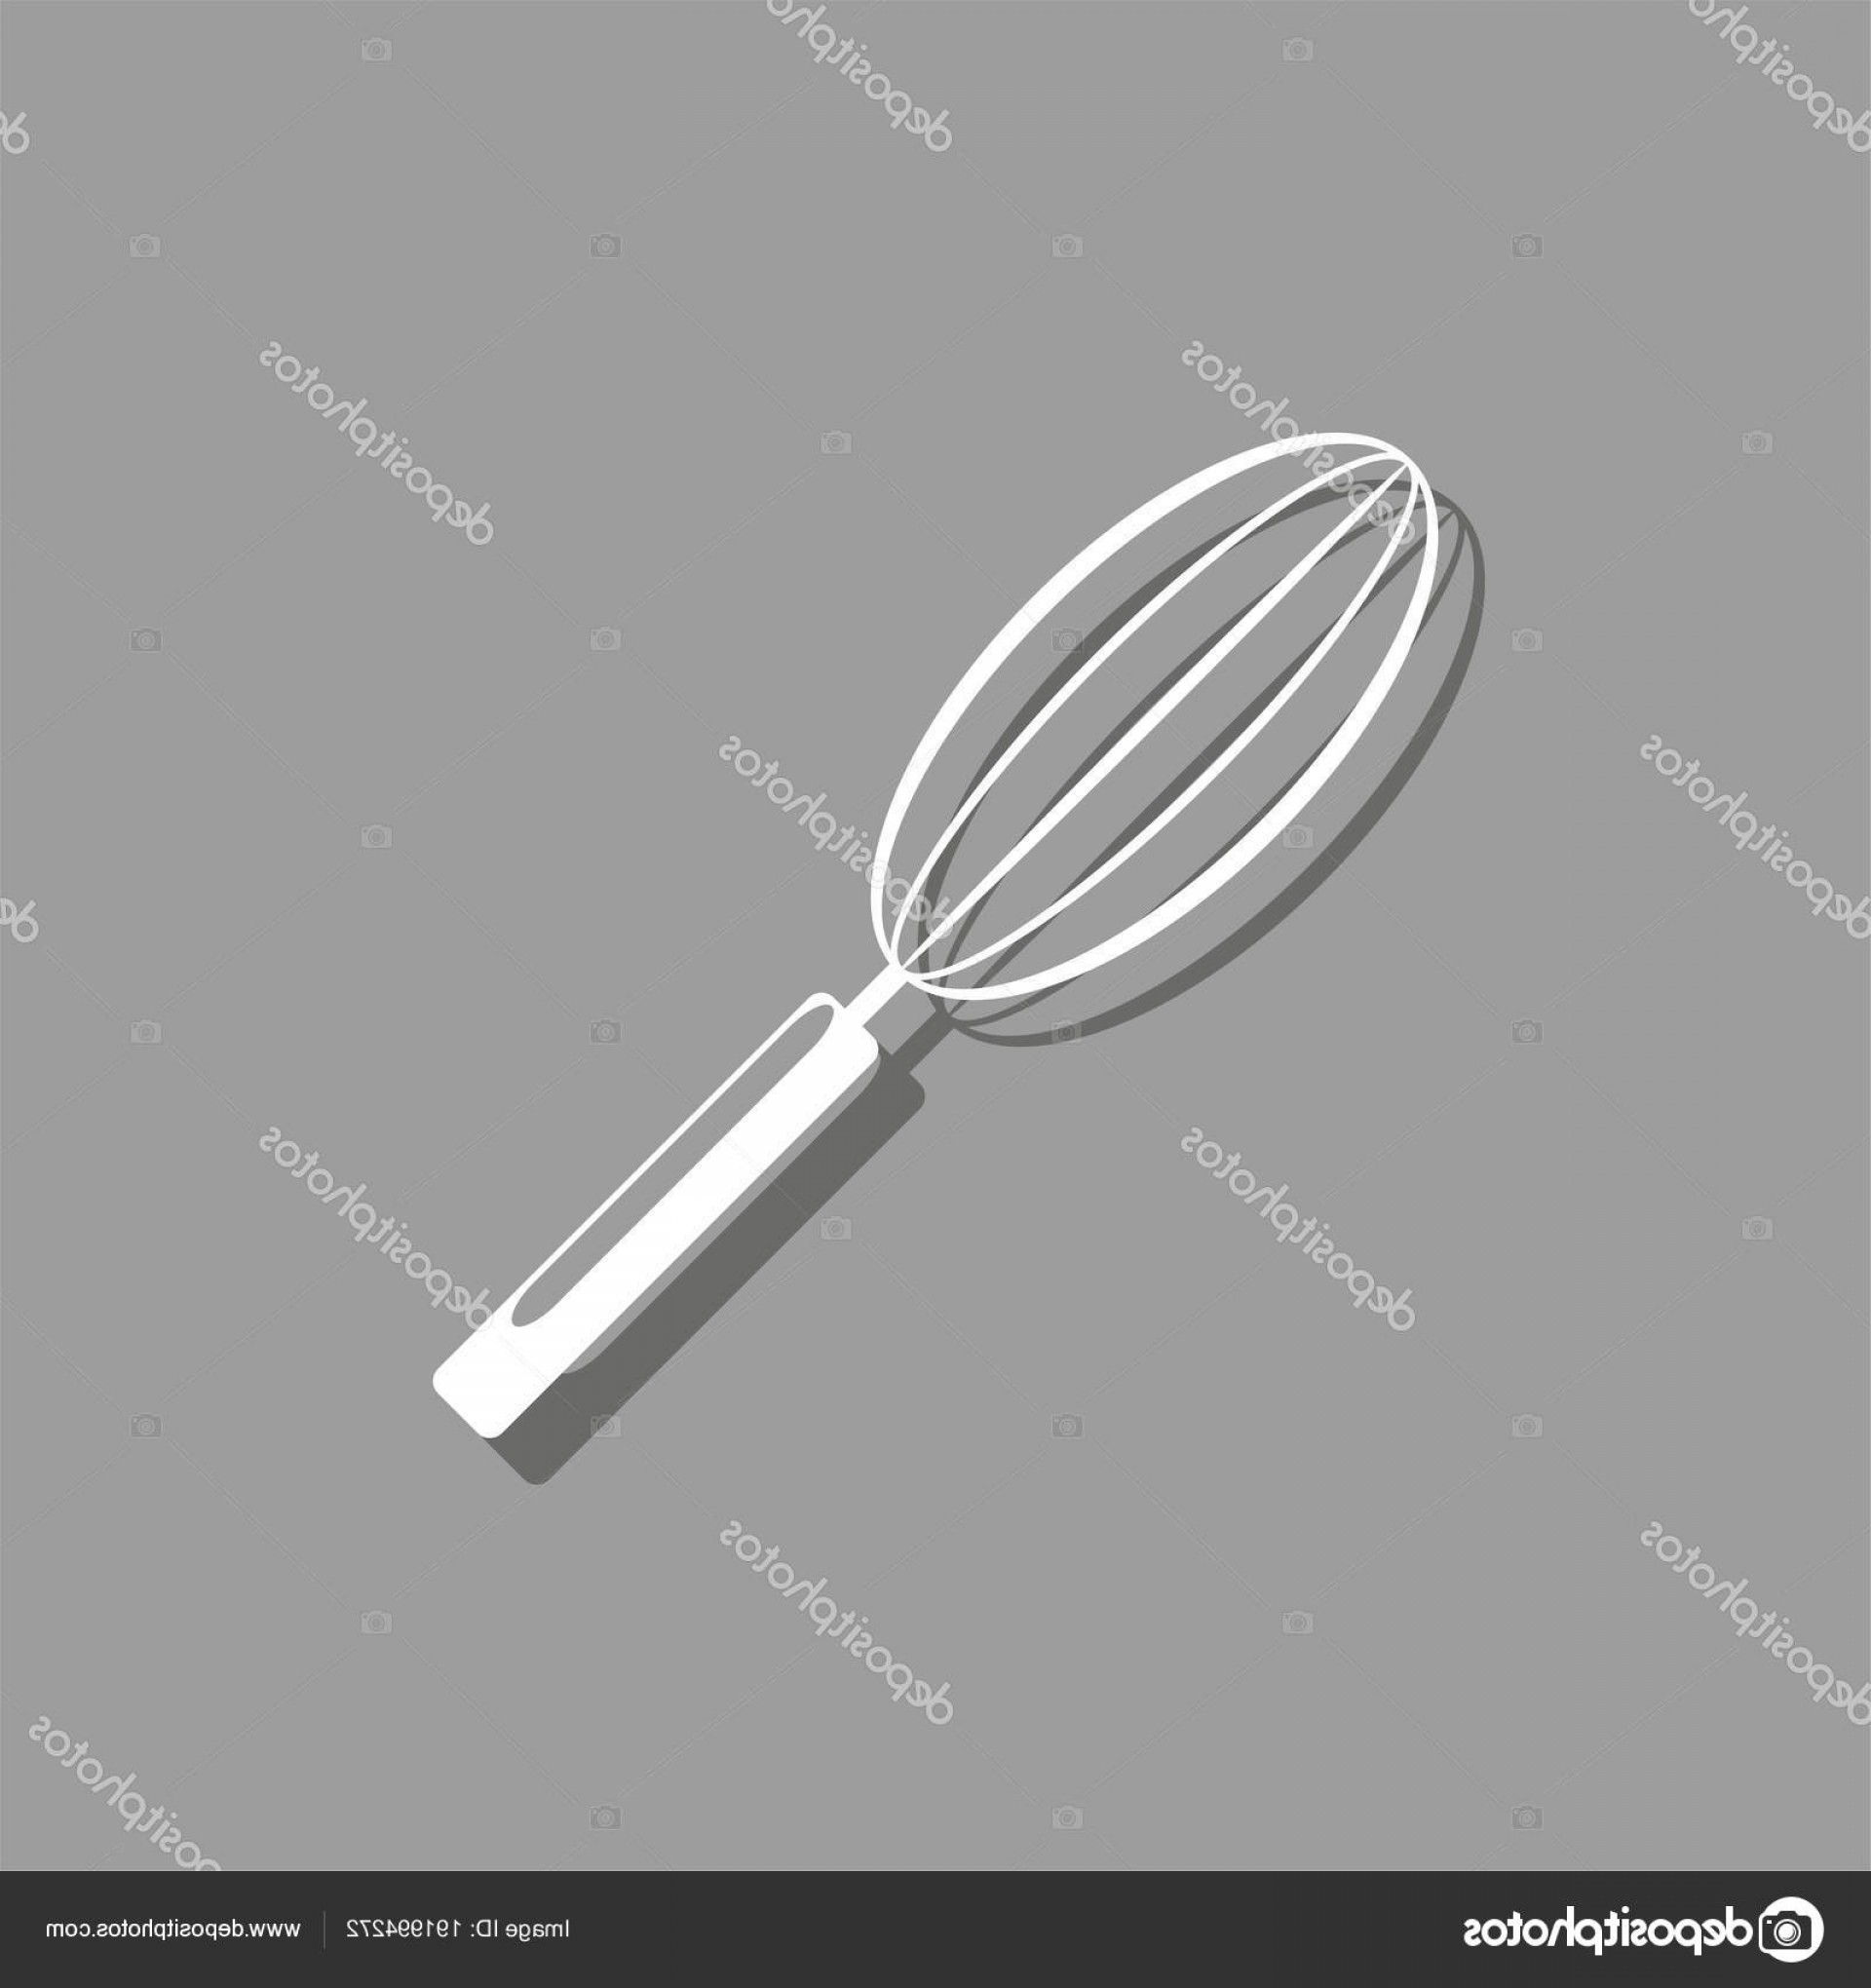 Kitchen Whisk Vector: Stock Illustration Kitchen Whisk Vector Icon